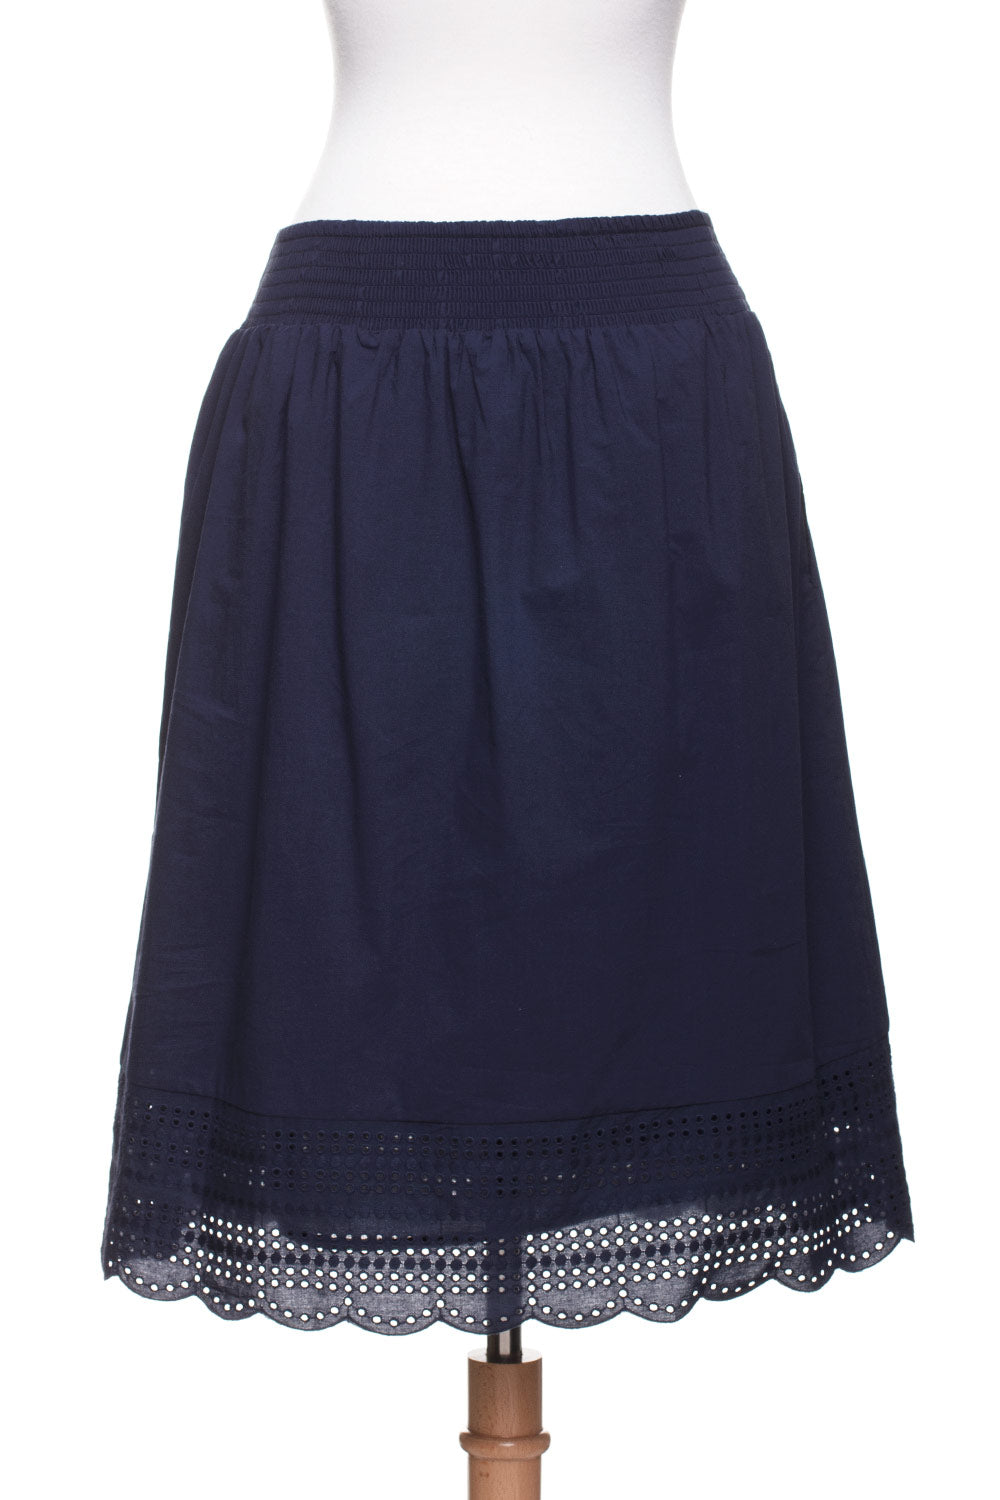 Type 2 Slow and Steady Skirt